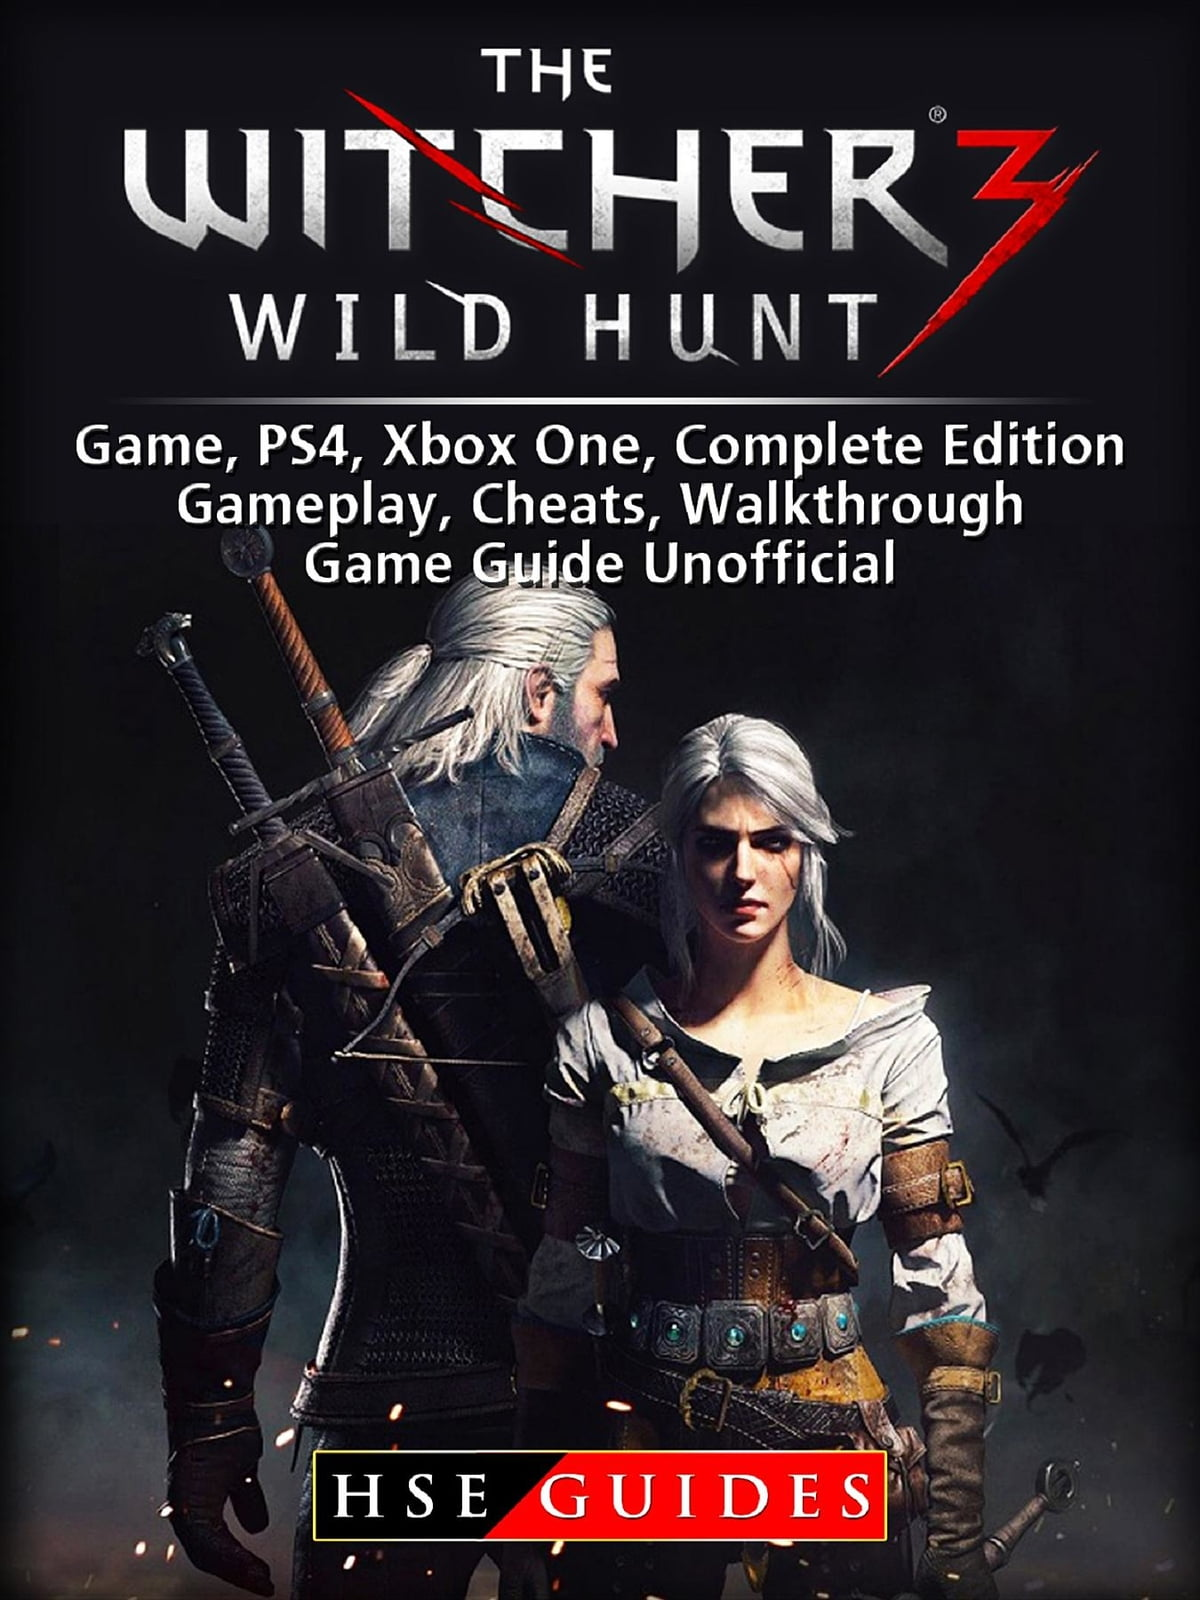 The Witcher 3 Wild Hunt Game, PS4, Xbox One, Complete Edition, Gameplay,  Cheats, Walkthrough, Game Guide Unofficial ebook by HSE Guides - Rakuten  Kobo